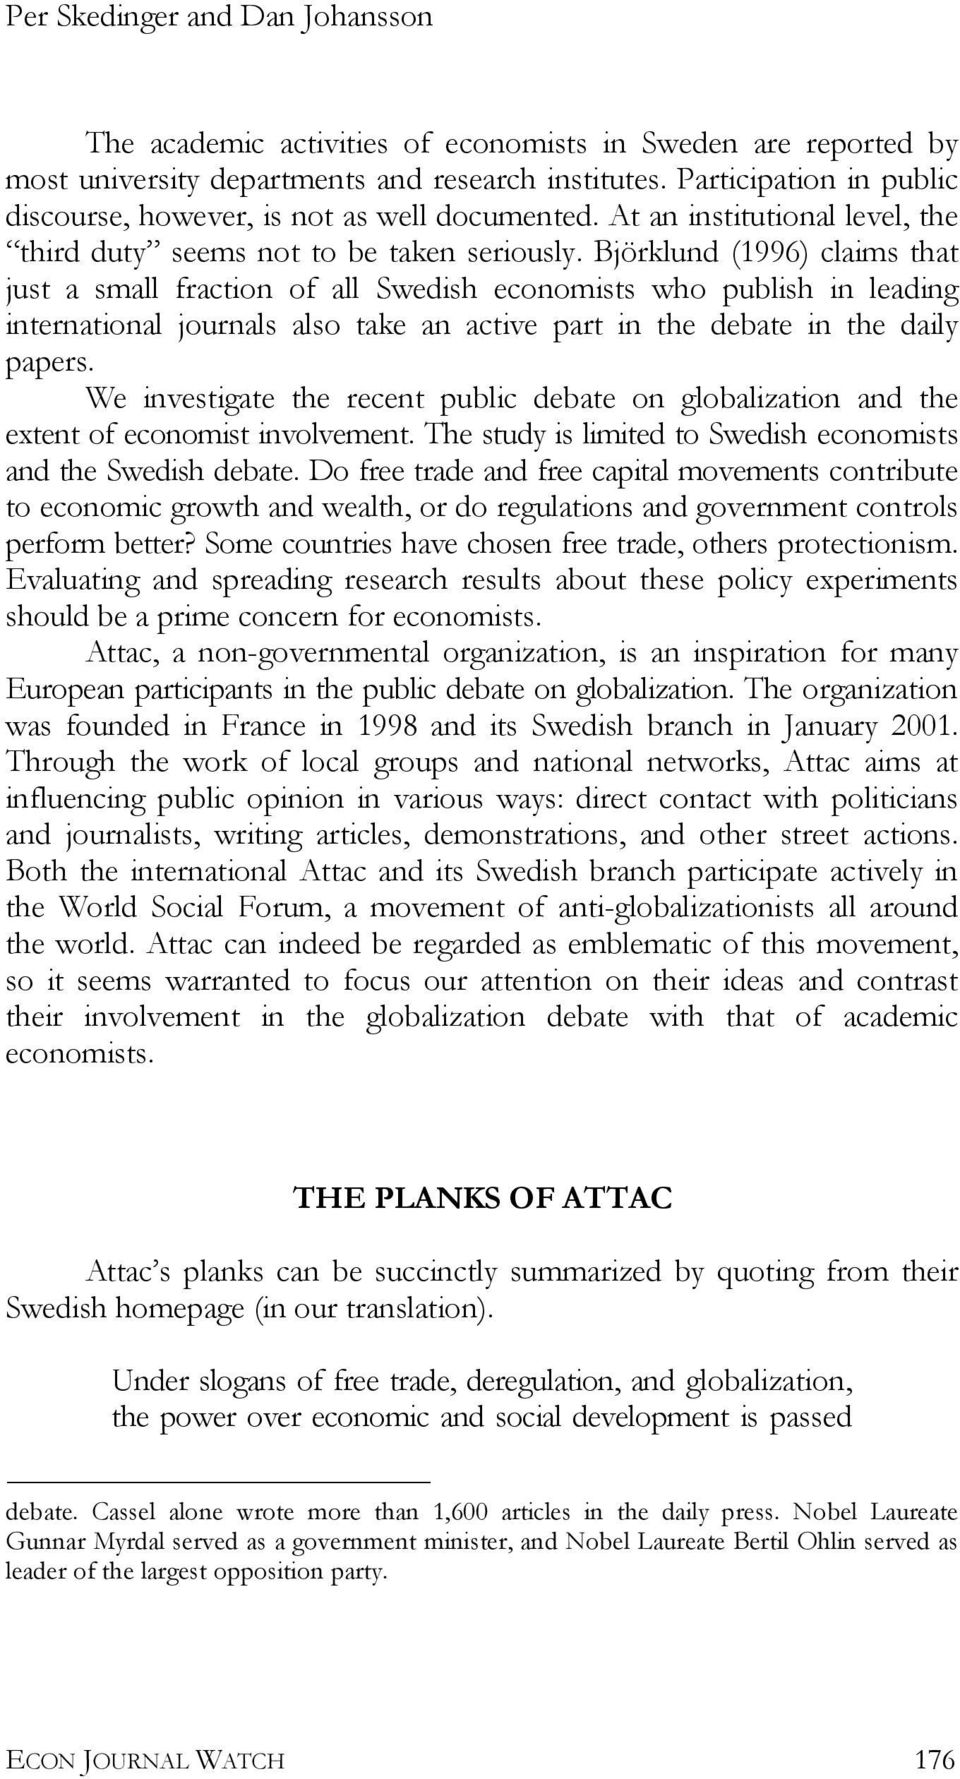 Björklund (1996) claims that just a small fraction of all Swedish economists who publish in leading international journals also take an active part in the debate in the daily papers.